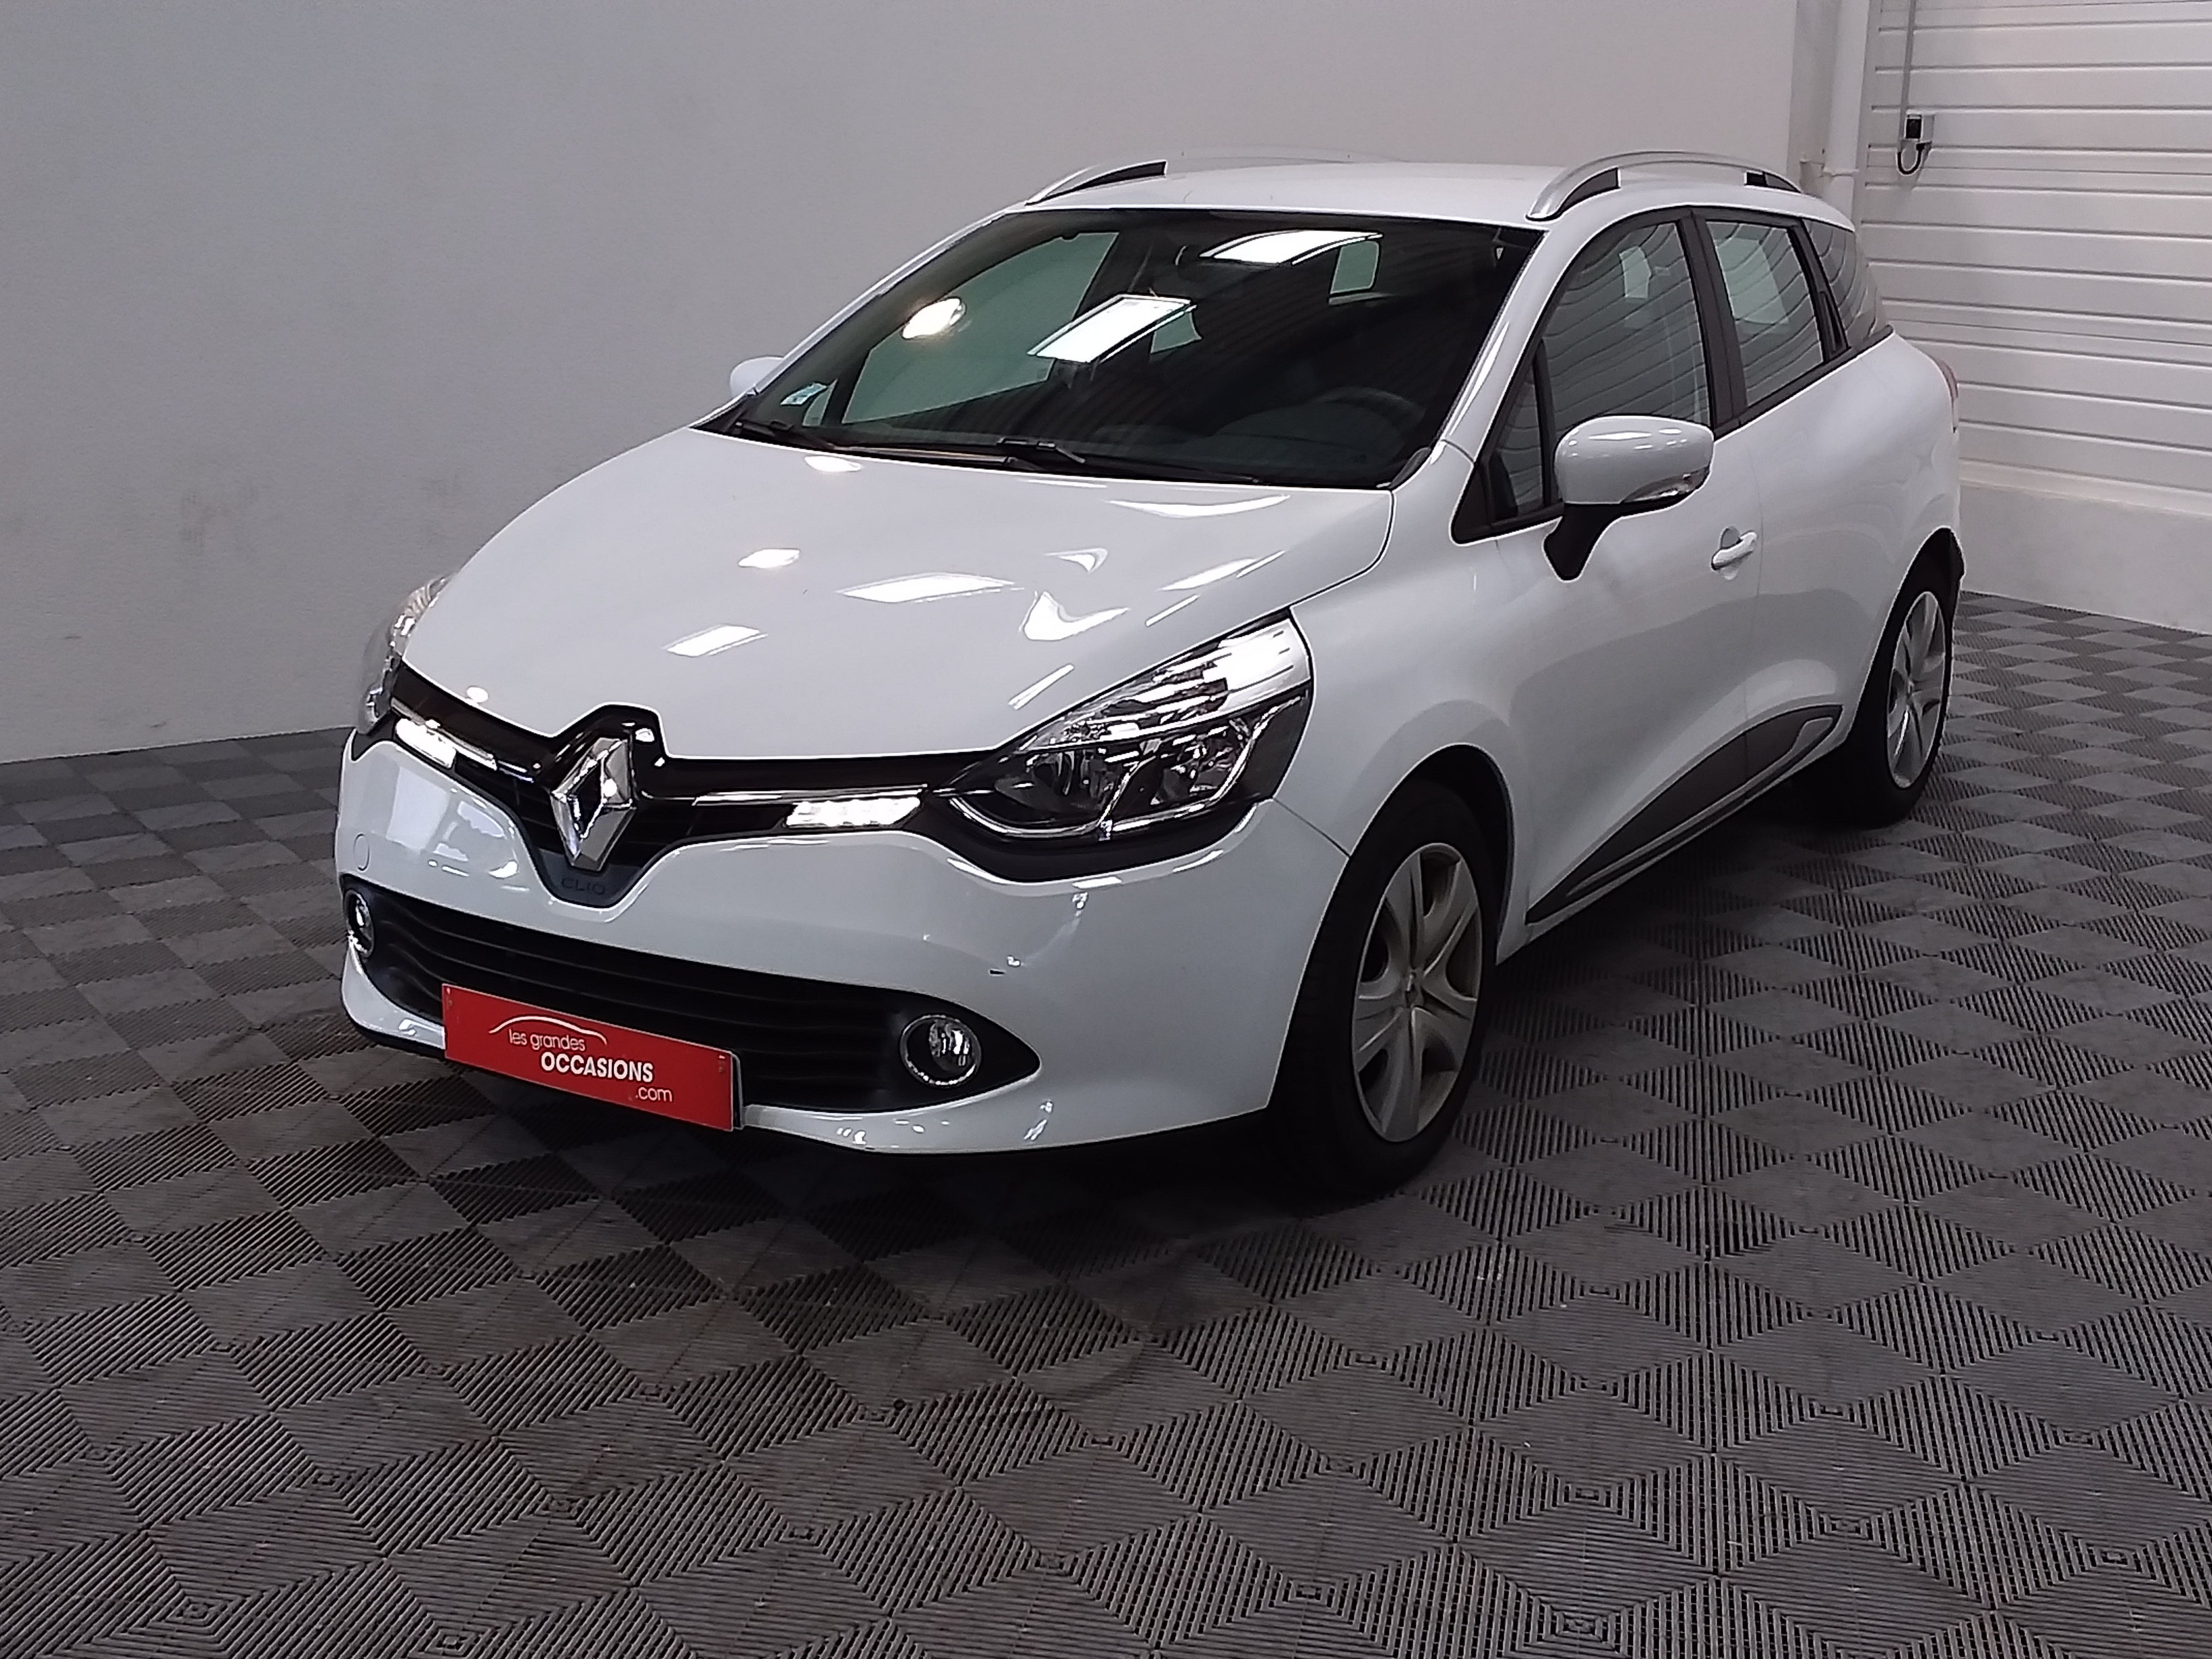 RENAULT CLIO IV ESTATE BUSINESS Estate IV dCi 90 Energy eco2 82g Business d'occasion